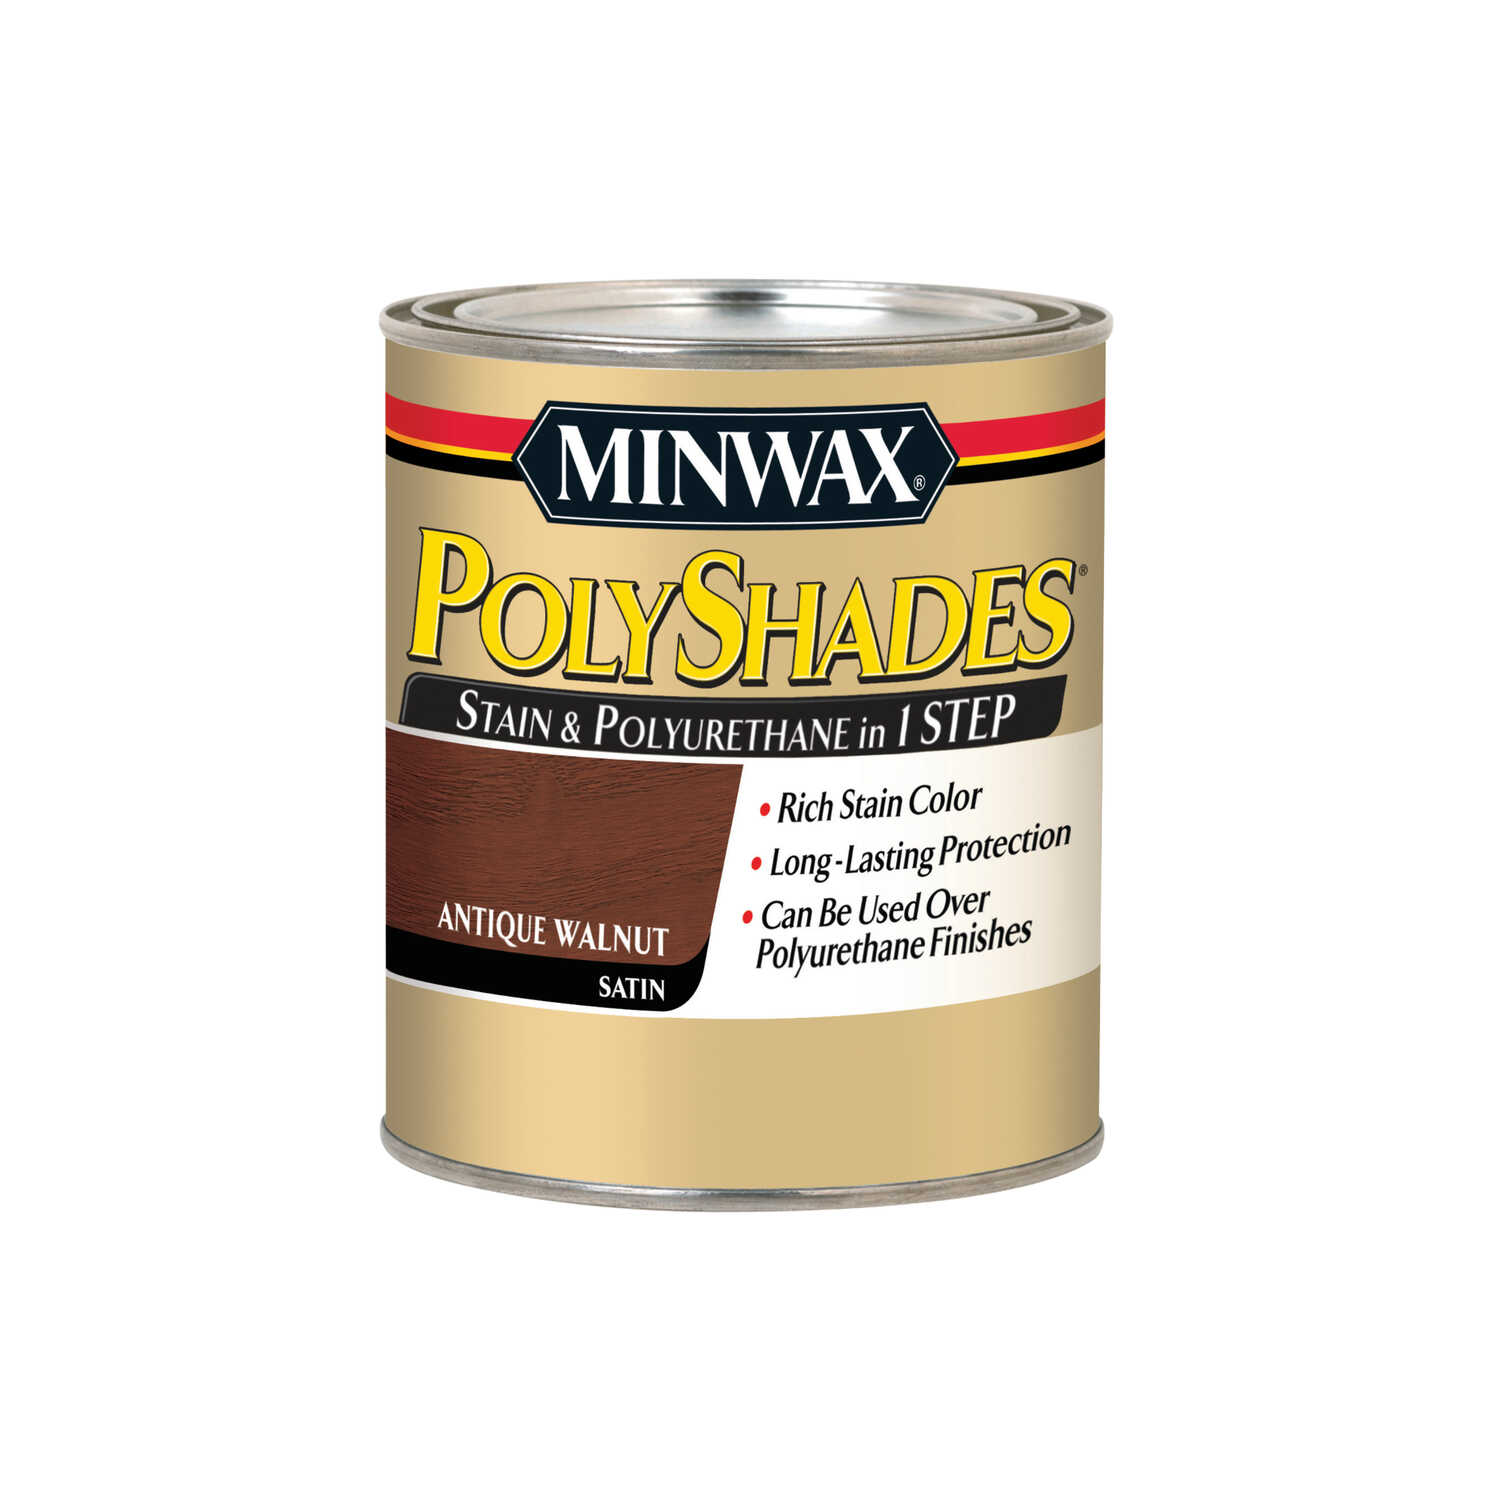 Minwax  PolyShades  Semi-Transparent  Satin  Antique Walnut  Oil-Based  Polyurethane Stain  1 qt.